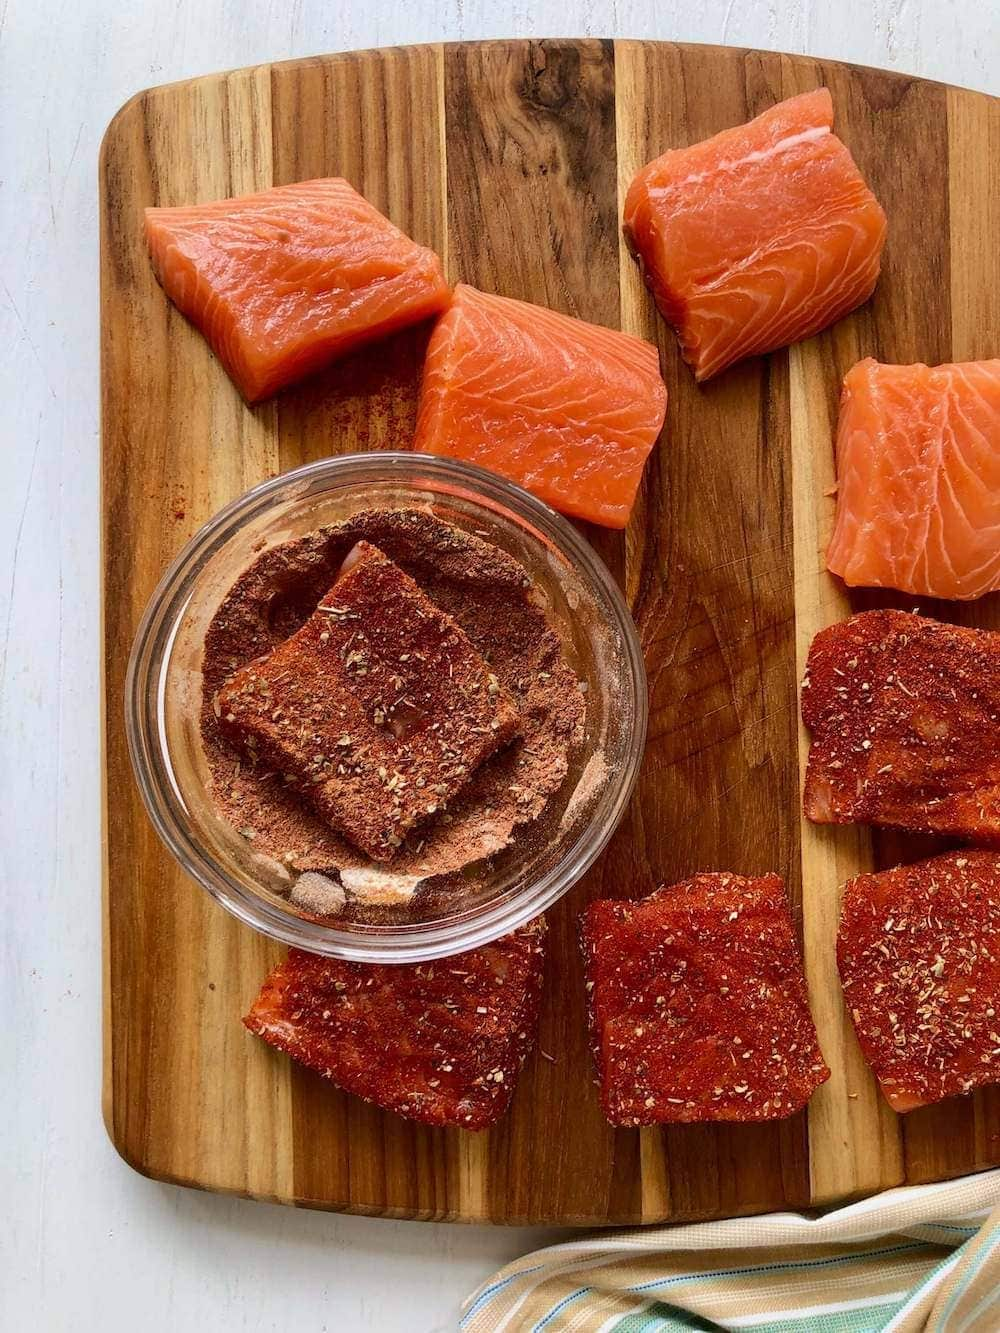 salmon with spices and rub on cutting board